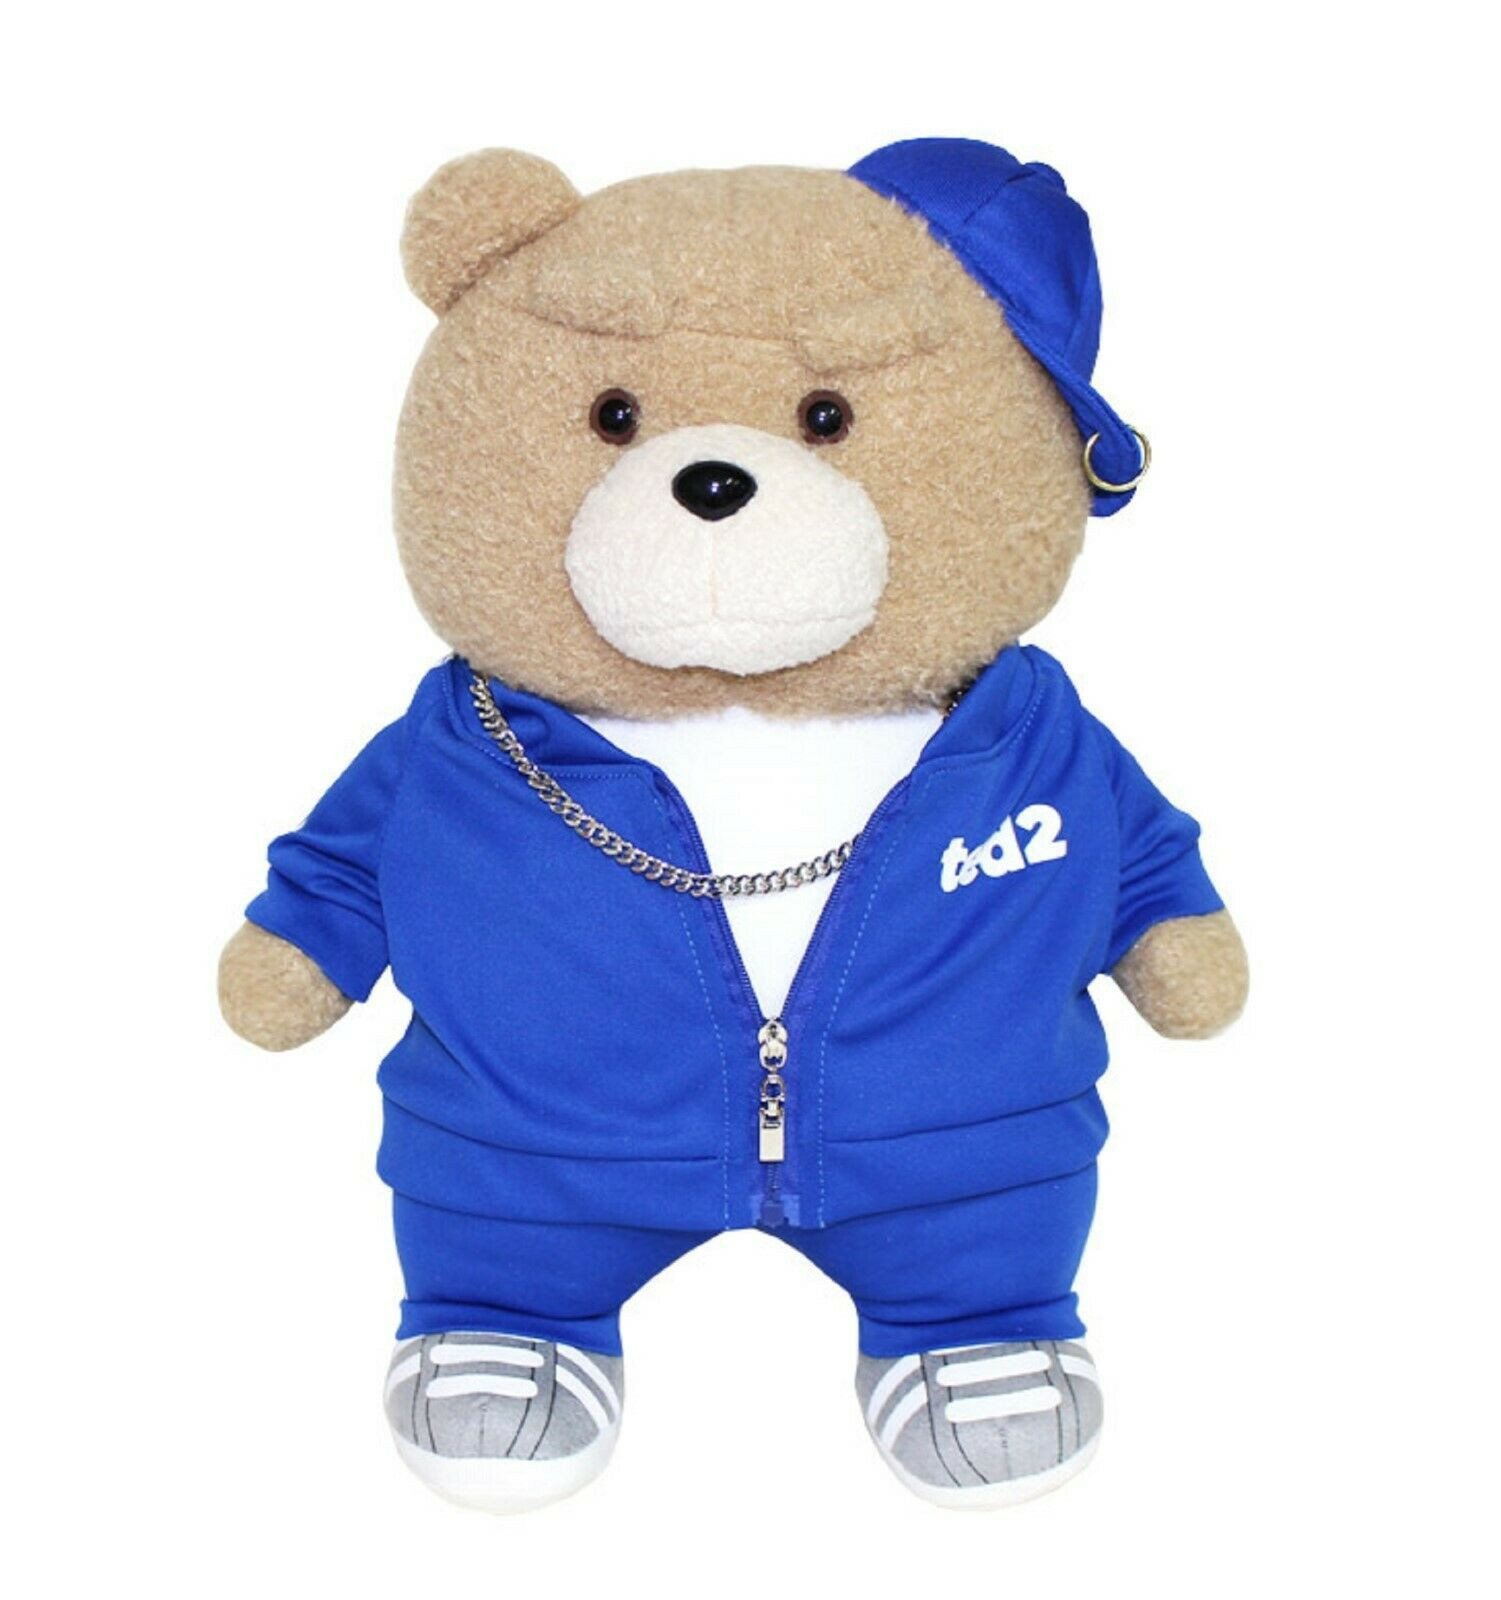 Ezen Creation Hippop Stuffed Animal Teddy Bear Plush Toy 35cm 13.7 inches (Blue)